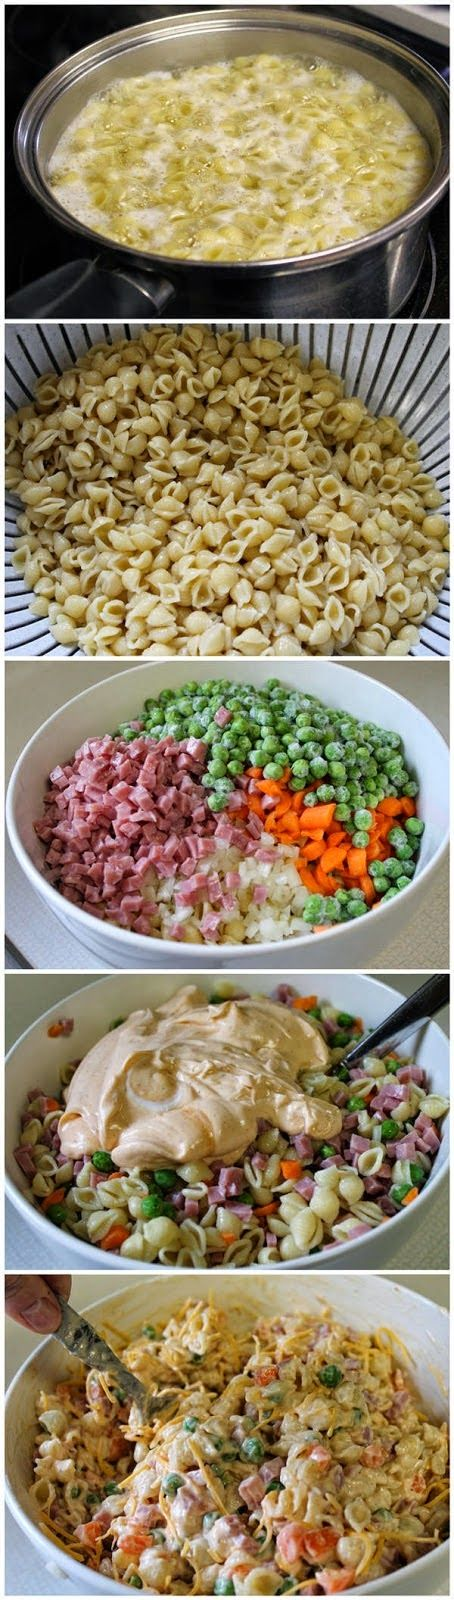 Summer Pasta Salad (No Mayo) - i get that this is terrible for you, but man if it doesn't sound delicious.